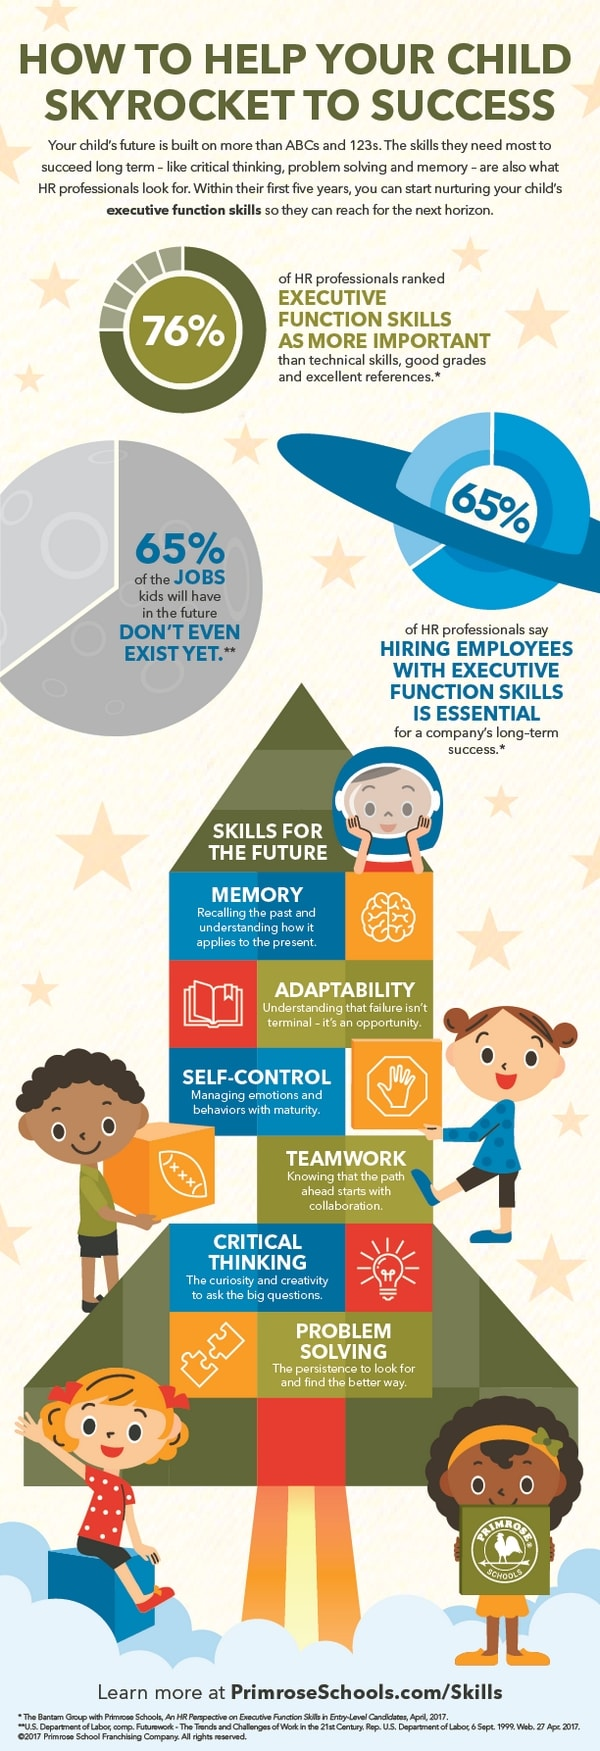 Learning through play benefits can help our kids in their adult lives!